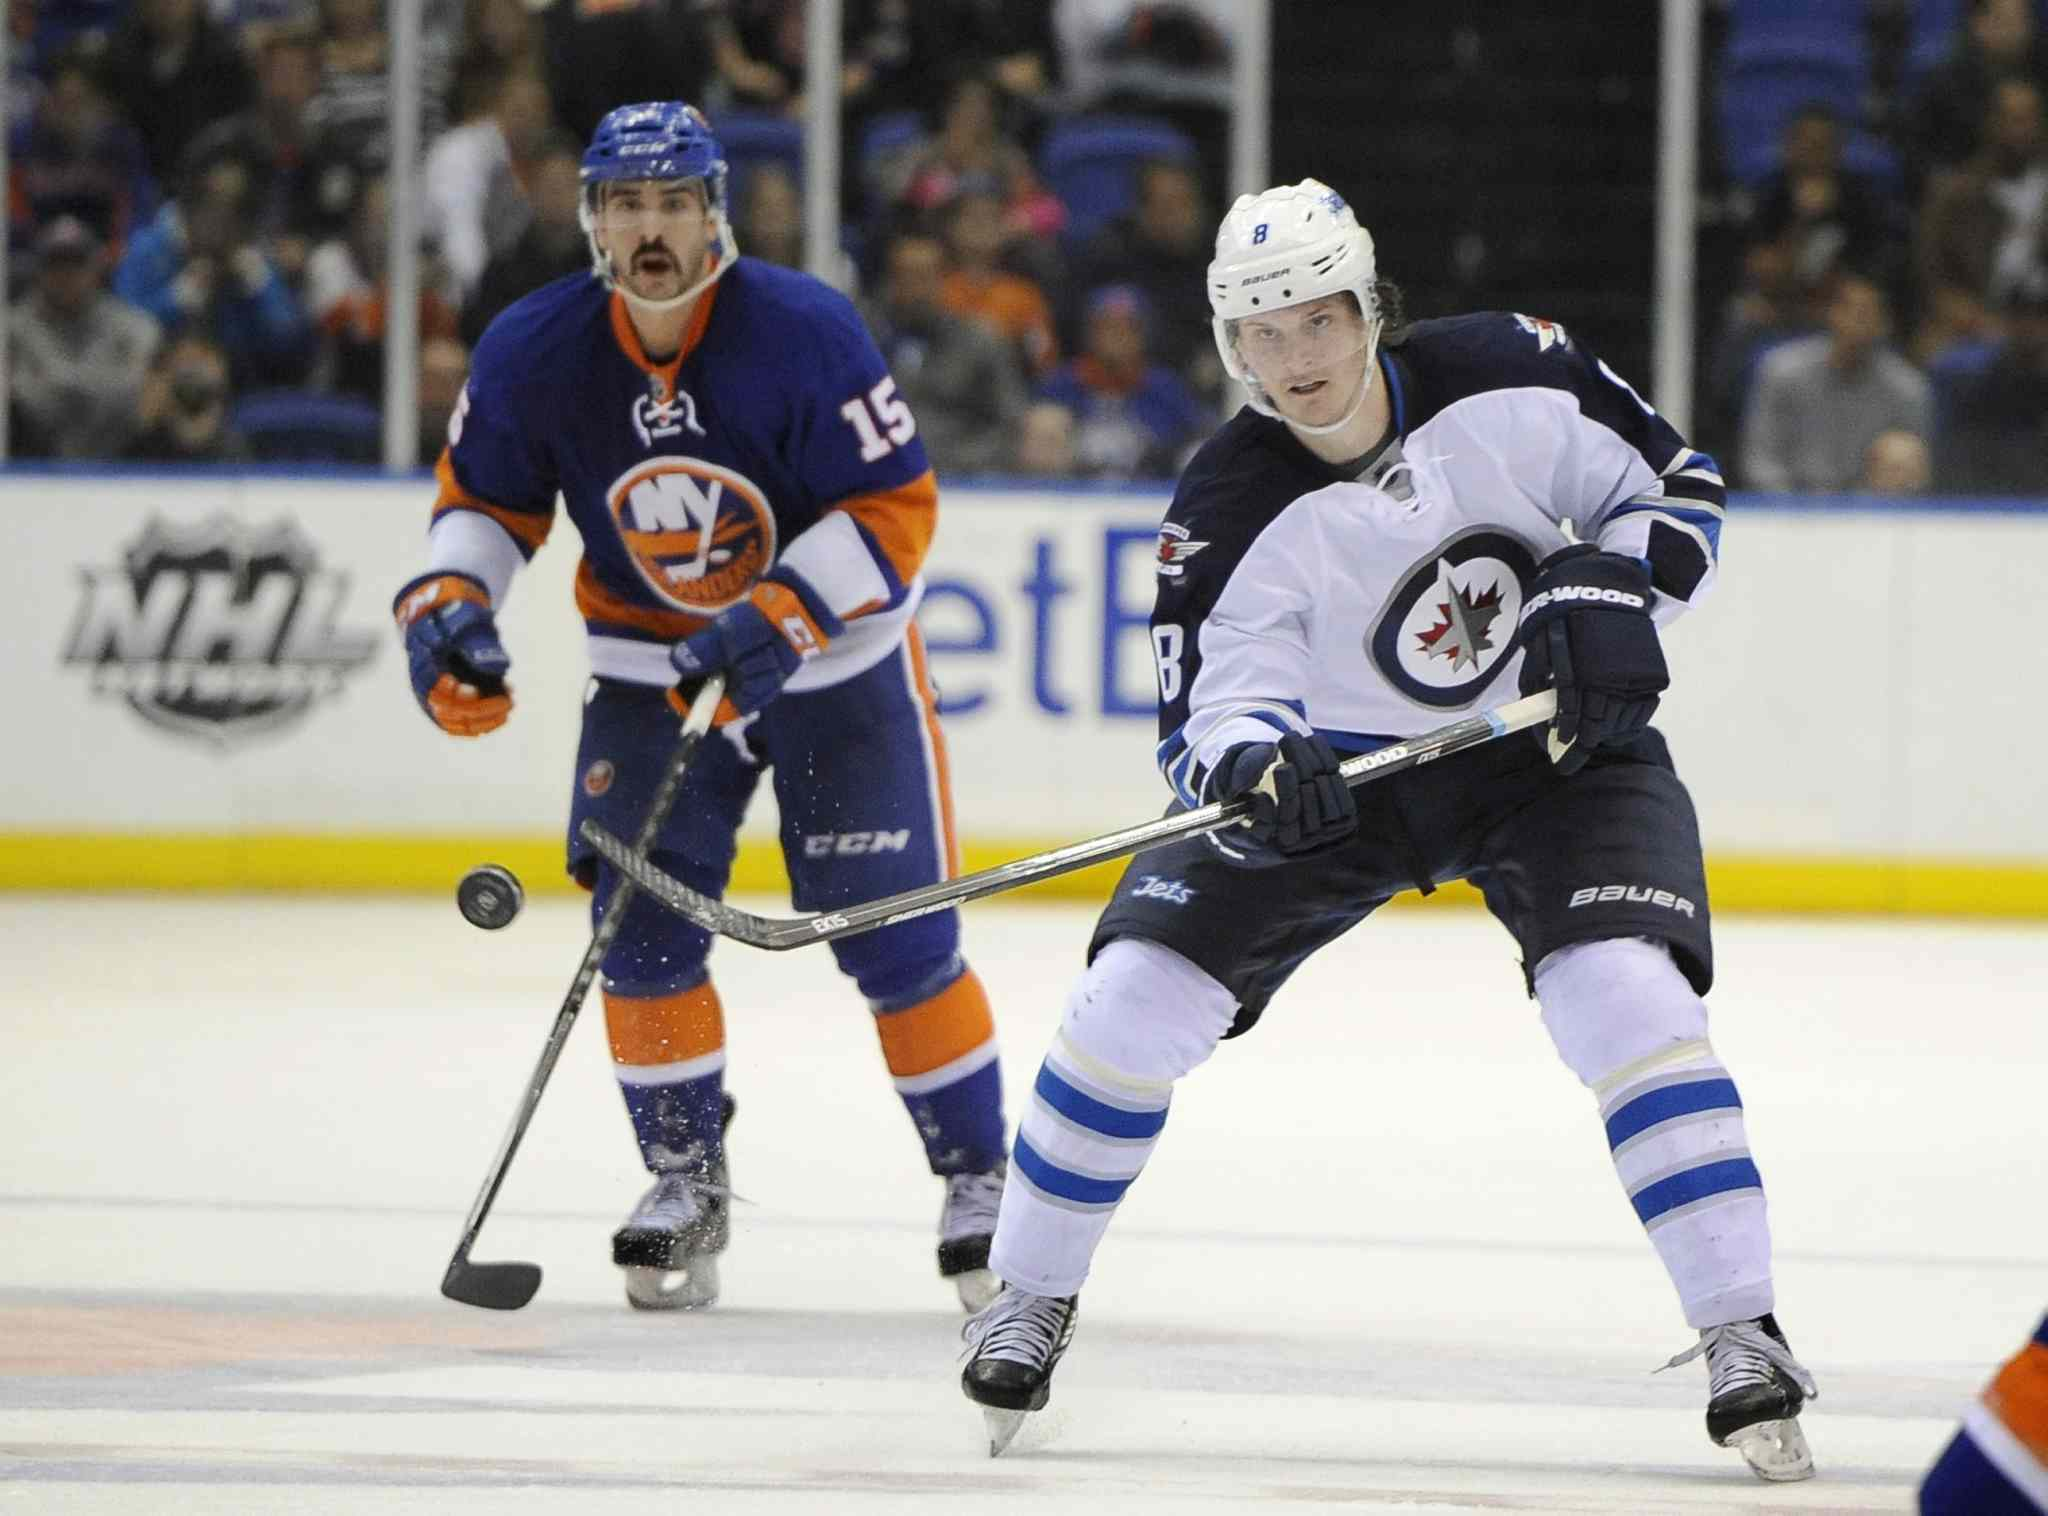 Winnipeg Jets defenceman Jacob Trouba (right) flicks the puck down the ice and away from New York Islanders forward Cal Clutterbuck in the third period.